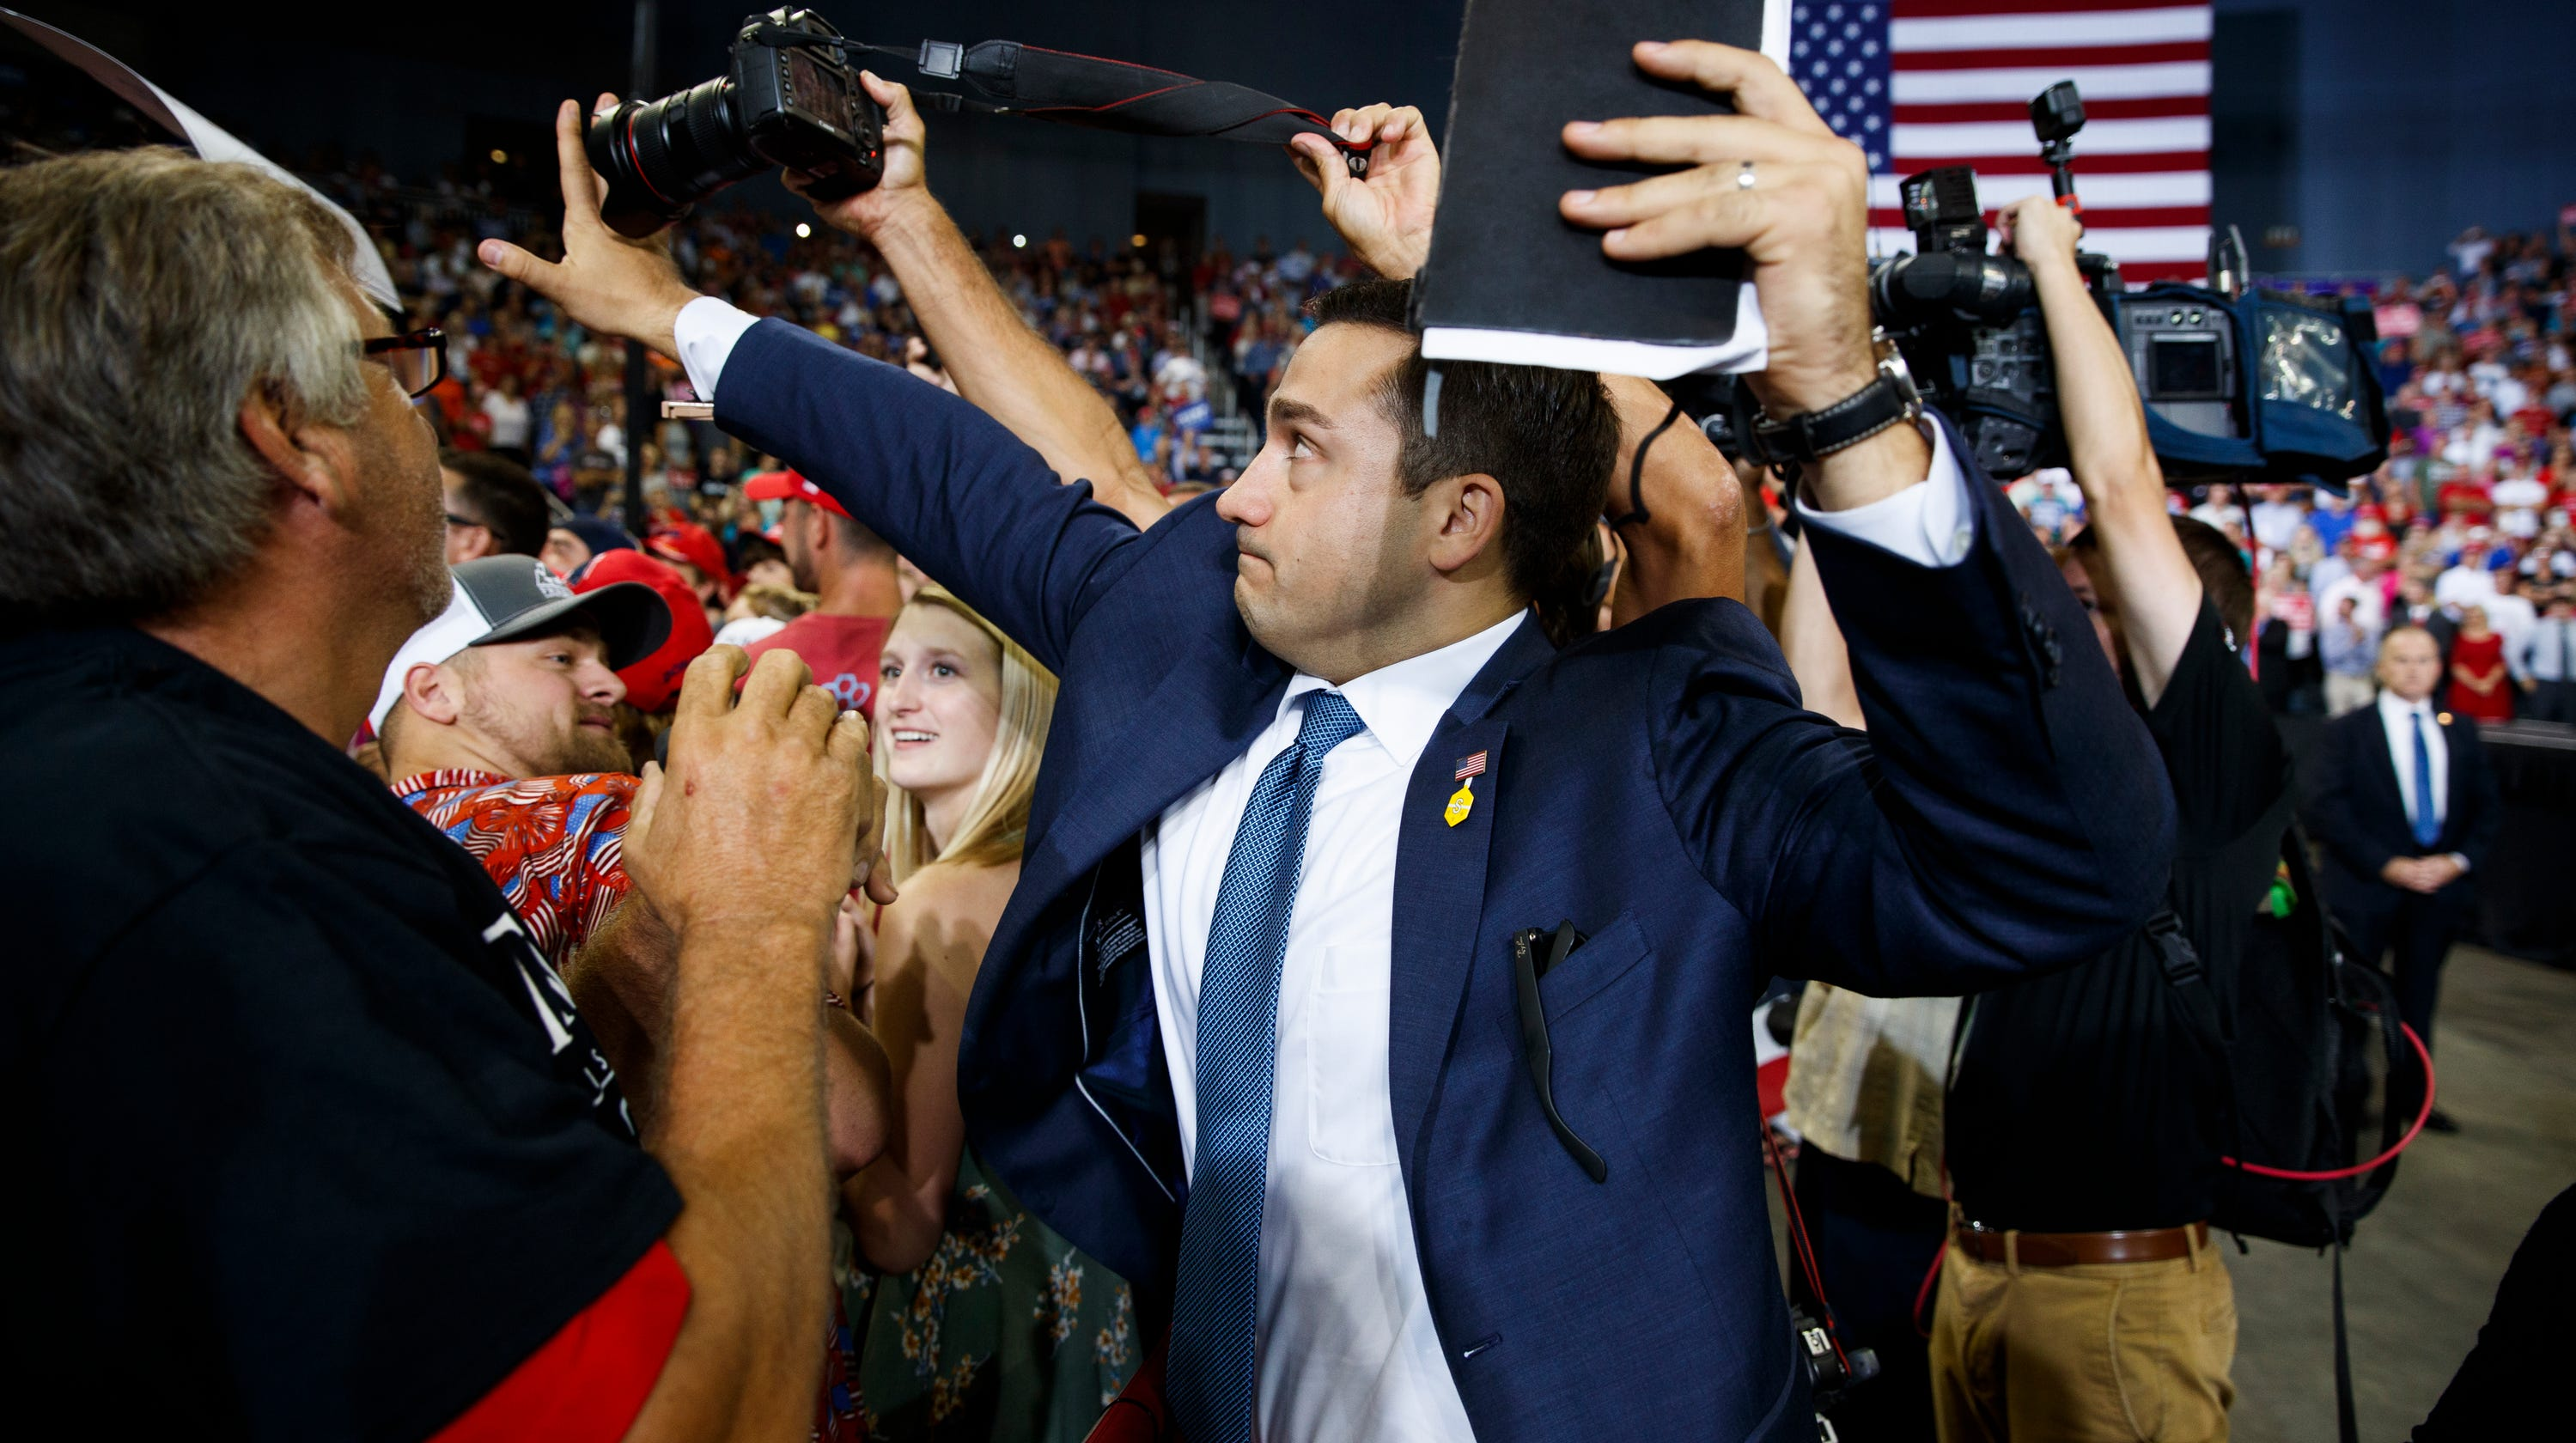 Trump volunteer who blocked news photographer's camera at Indiana rally taken off road